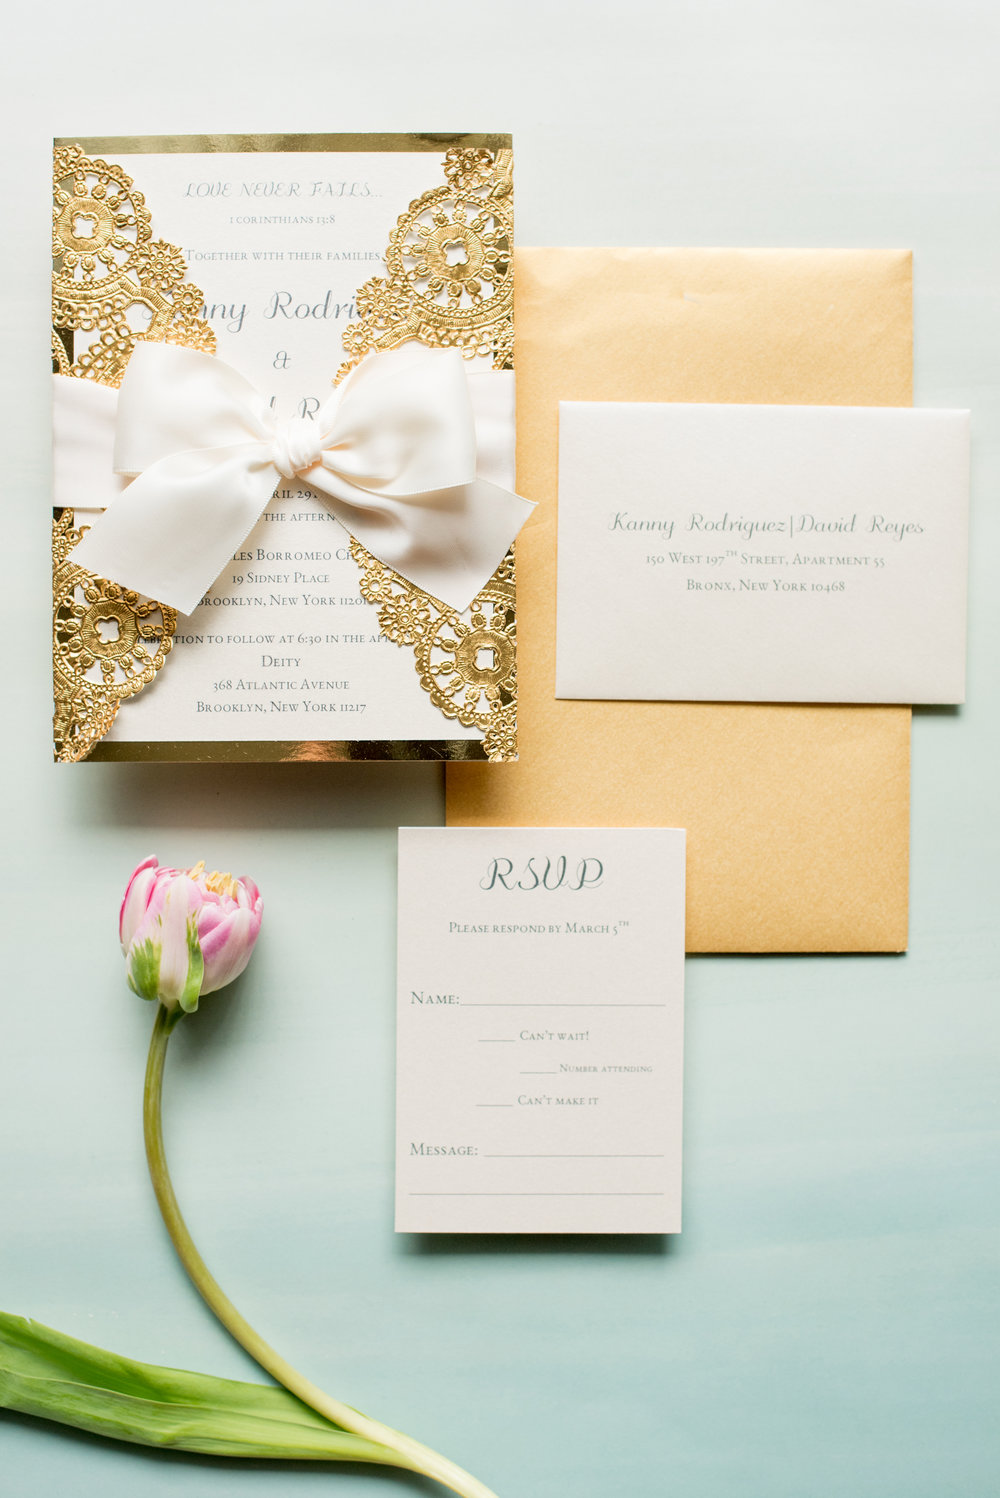 All about the gold accents! I loved these wedding invitations